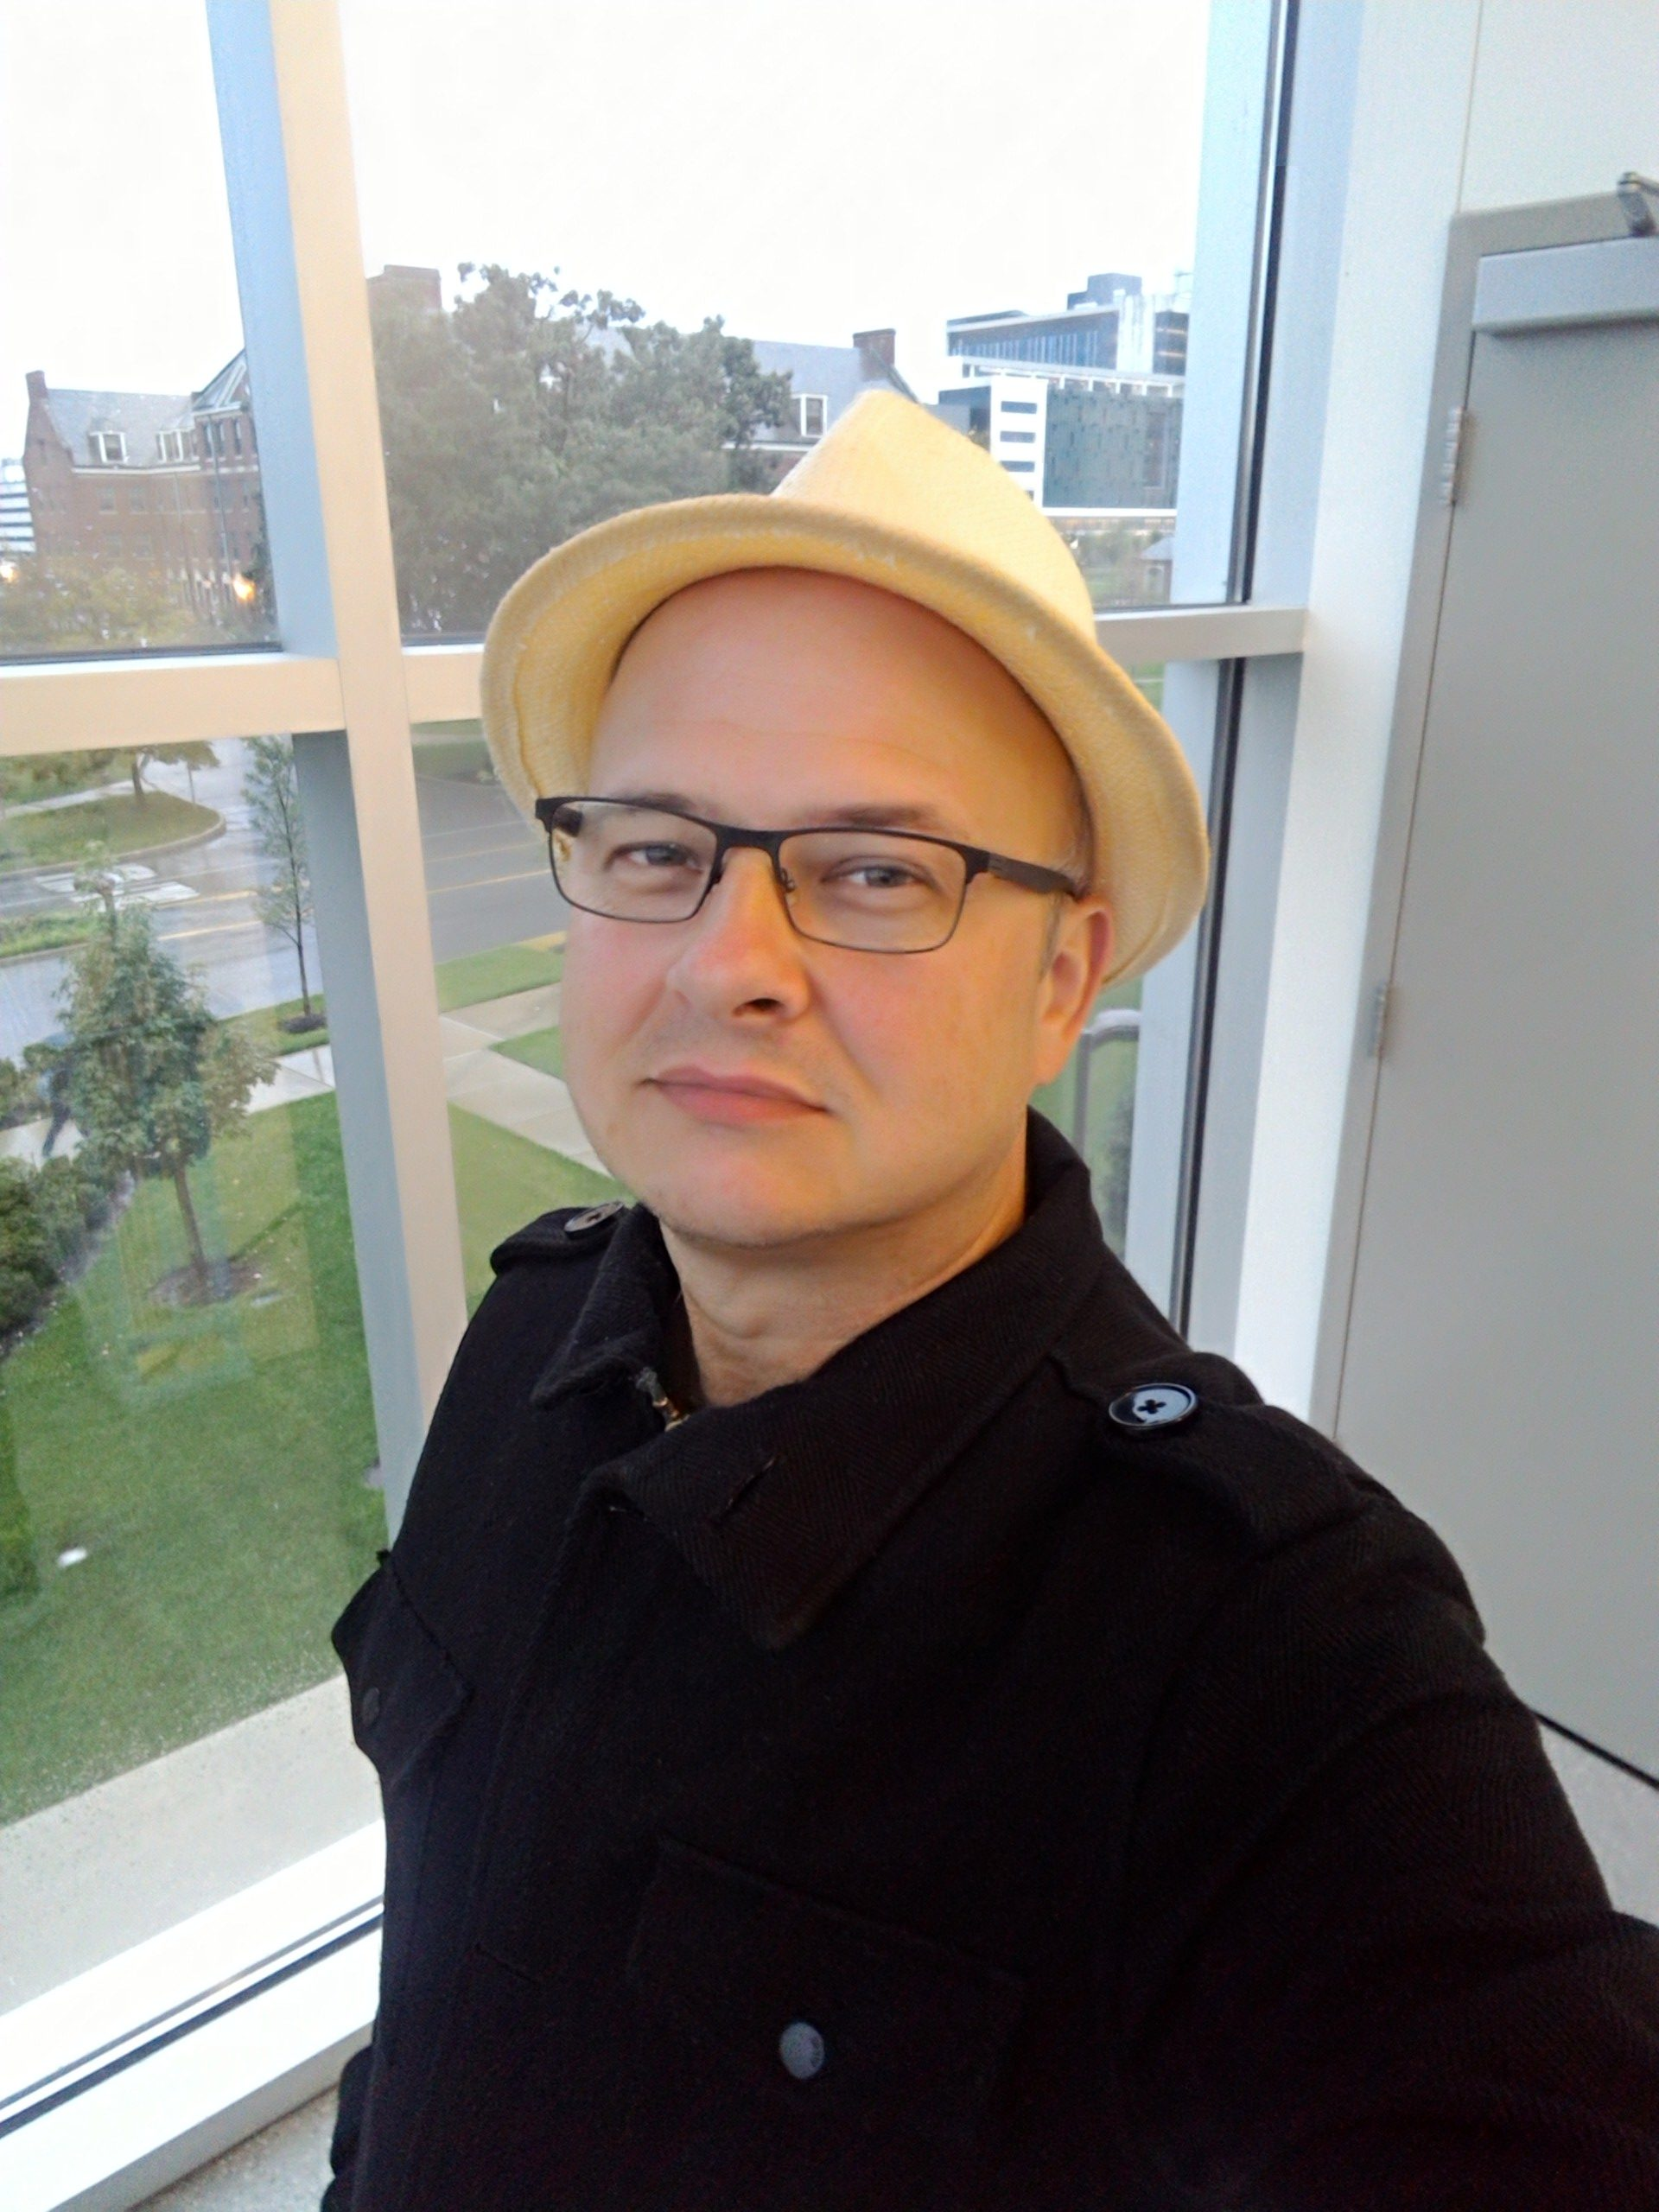 I'm wearing a black cotton peacoat black metal-framed eyeglasses, and a straw fedora. In the backgrounds is a metal door and large windows through which a lawn and other buildings can bee seen.